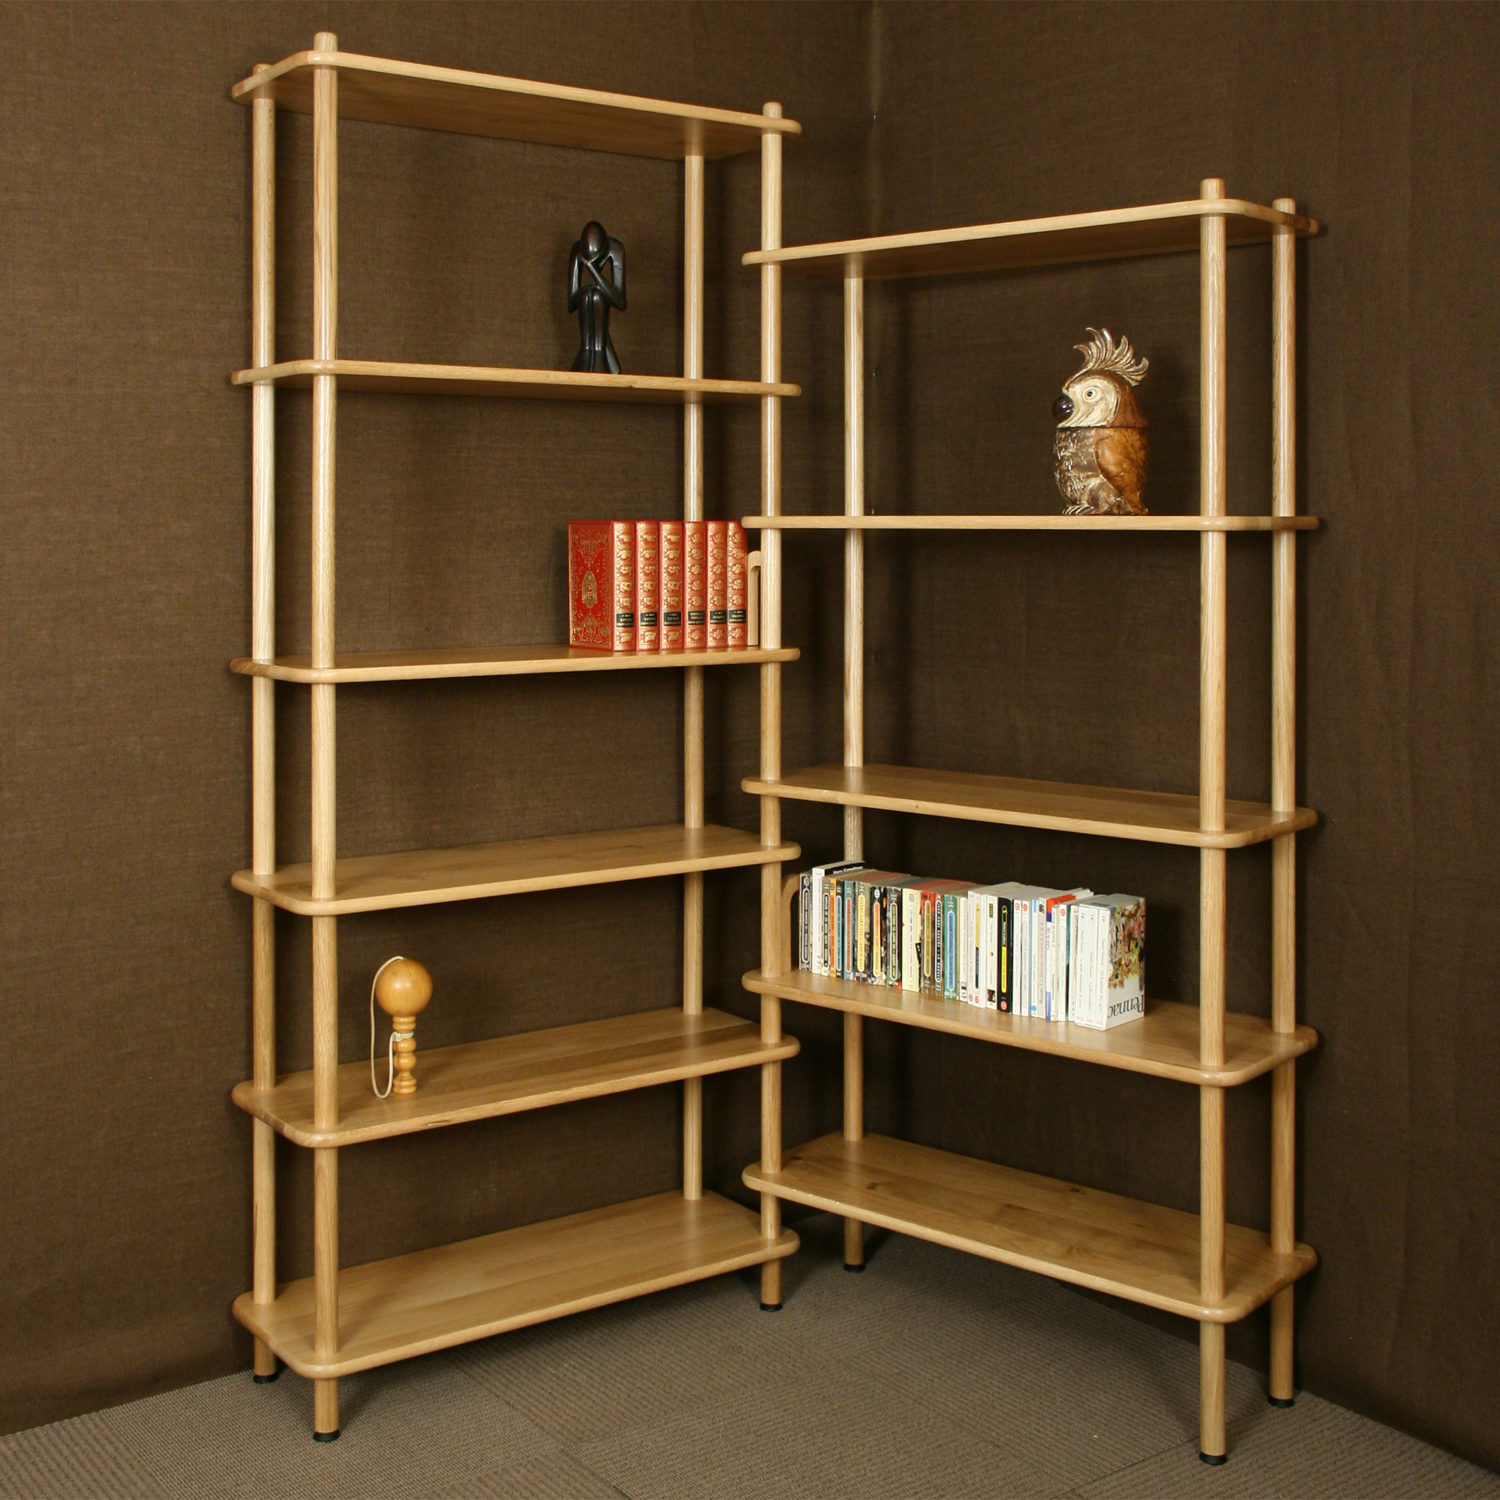 tag res d angle biblioth que modulable cubit by. Black Bedroom Furniture Sets. Home Design Ideas